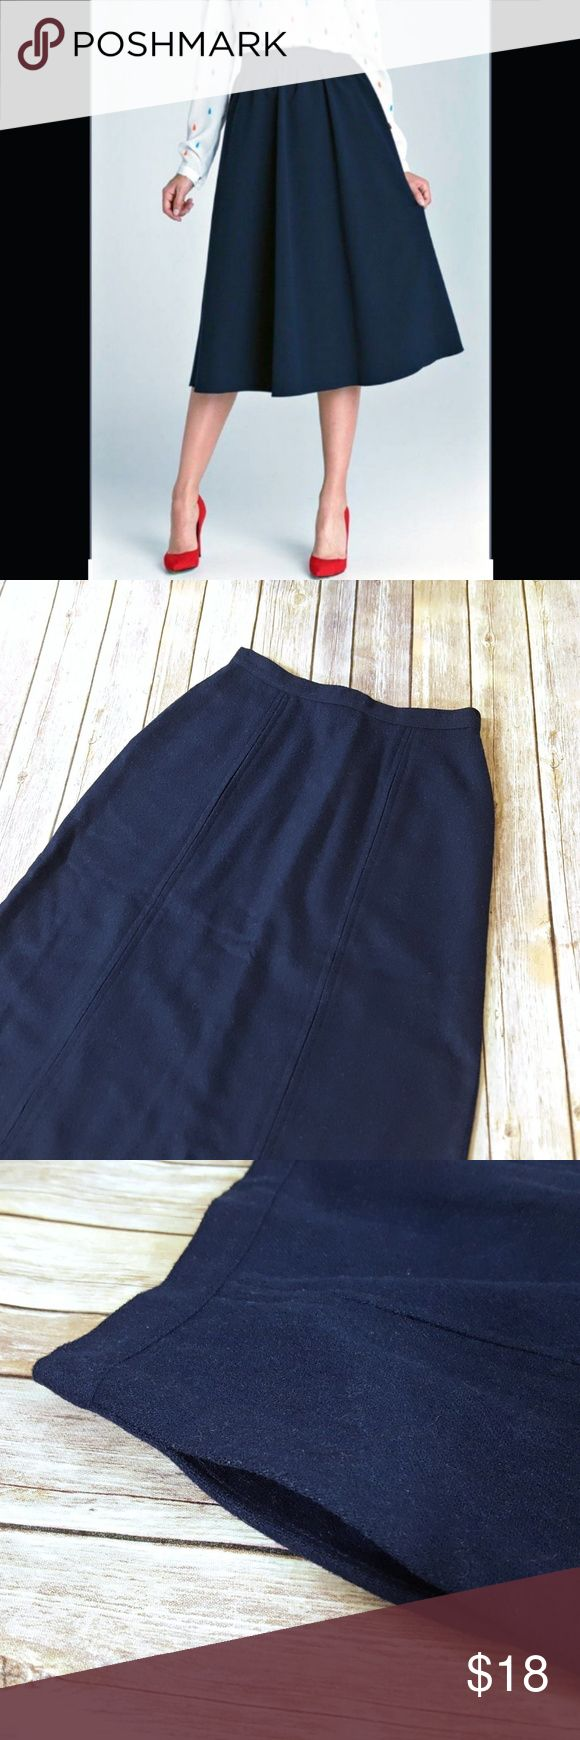 """Sapphire Blue Wool A-line Skirt Vintage Wool Midi A-line Skirt. Unlined, hidden slant fside pockets, hidden back zipper and button closure. Dartimg detail at back and tailored front pleating at front. Excellent used condition. Tag says size 8 but fits a size 0 - 2. Measures lying flat 13.5"""" waist, approx 19.5"""" hips, 24"""" at bottom hem, 28"""" total length. No designer label. Wool / or wool blend. Color is a sapphire blue. Vintage Skirts A-Line or Full"""